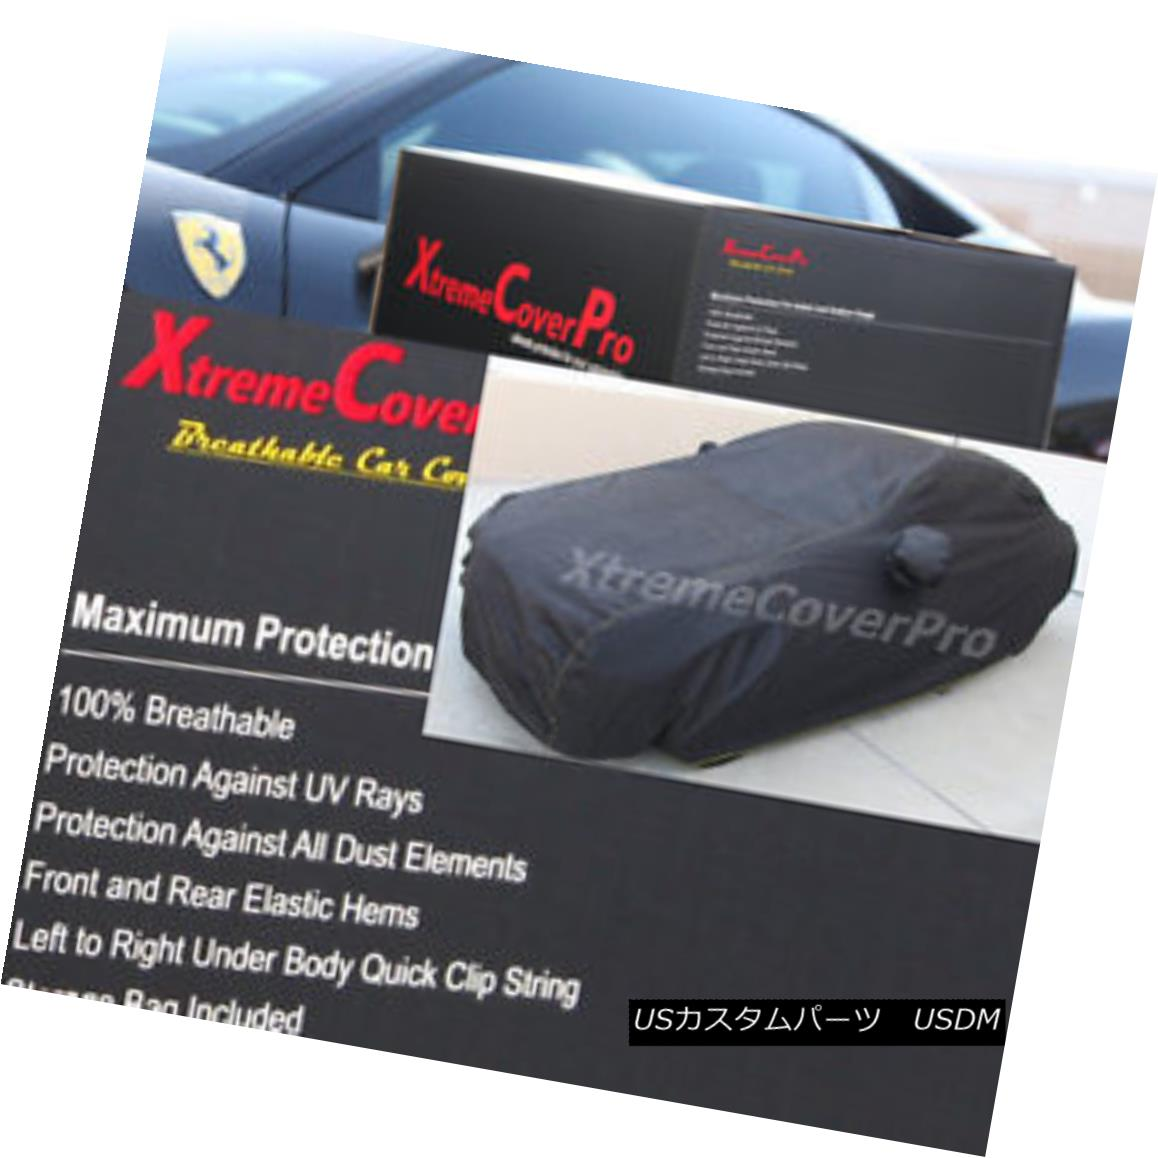 カーカバー 2010 2011 2012 Mercedes E350 E550 E63 Sedan Breathable Car Cover w/MirrorPocket 2010年2011年2012年メルセデスE350 E550 E63セダン通気性車カバー付きMirrorPocket